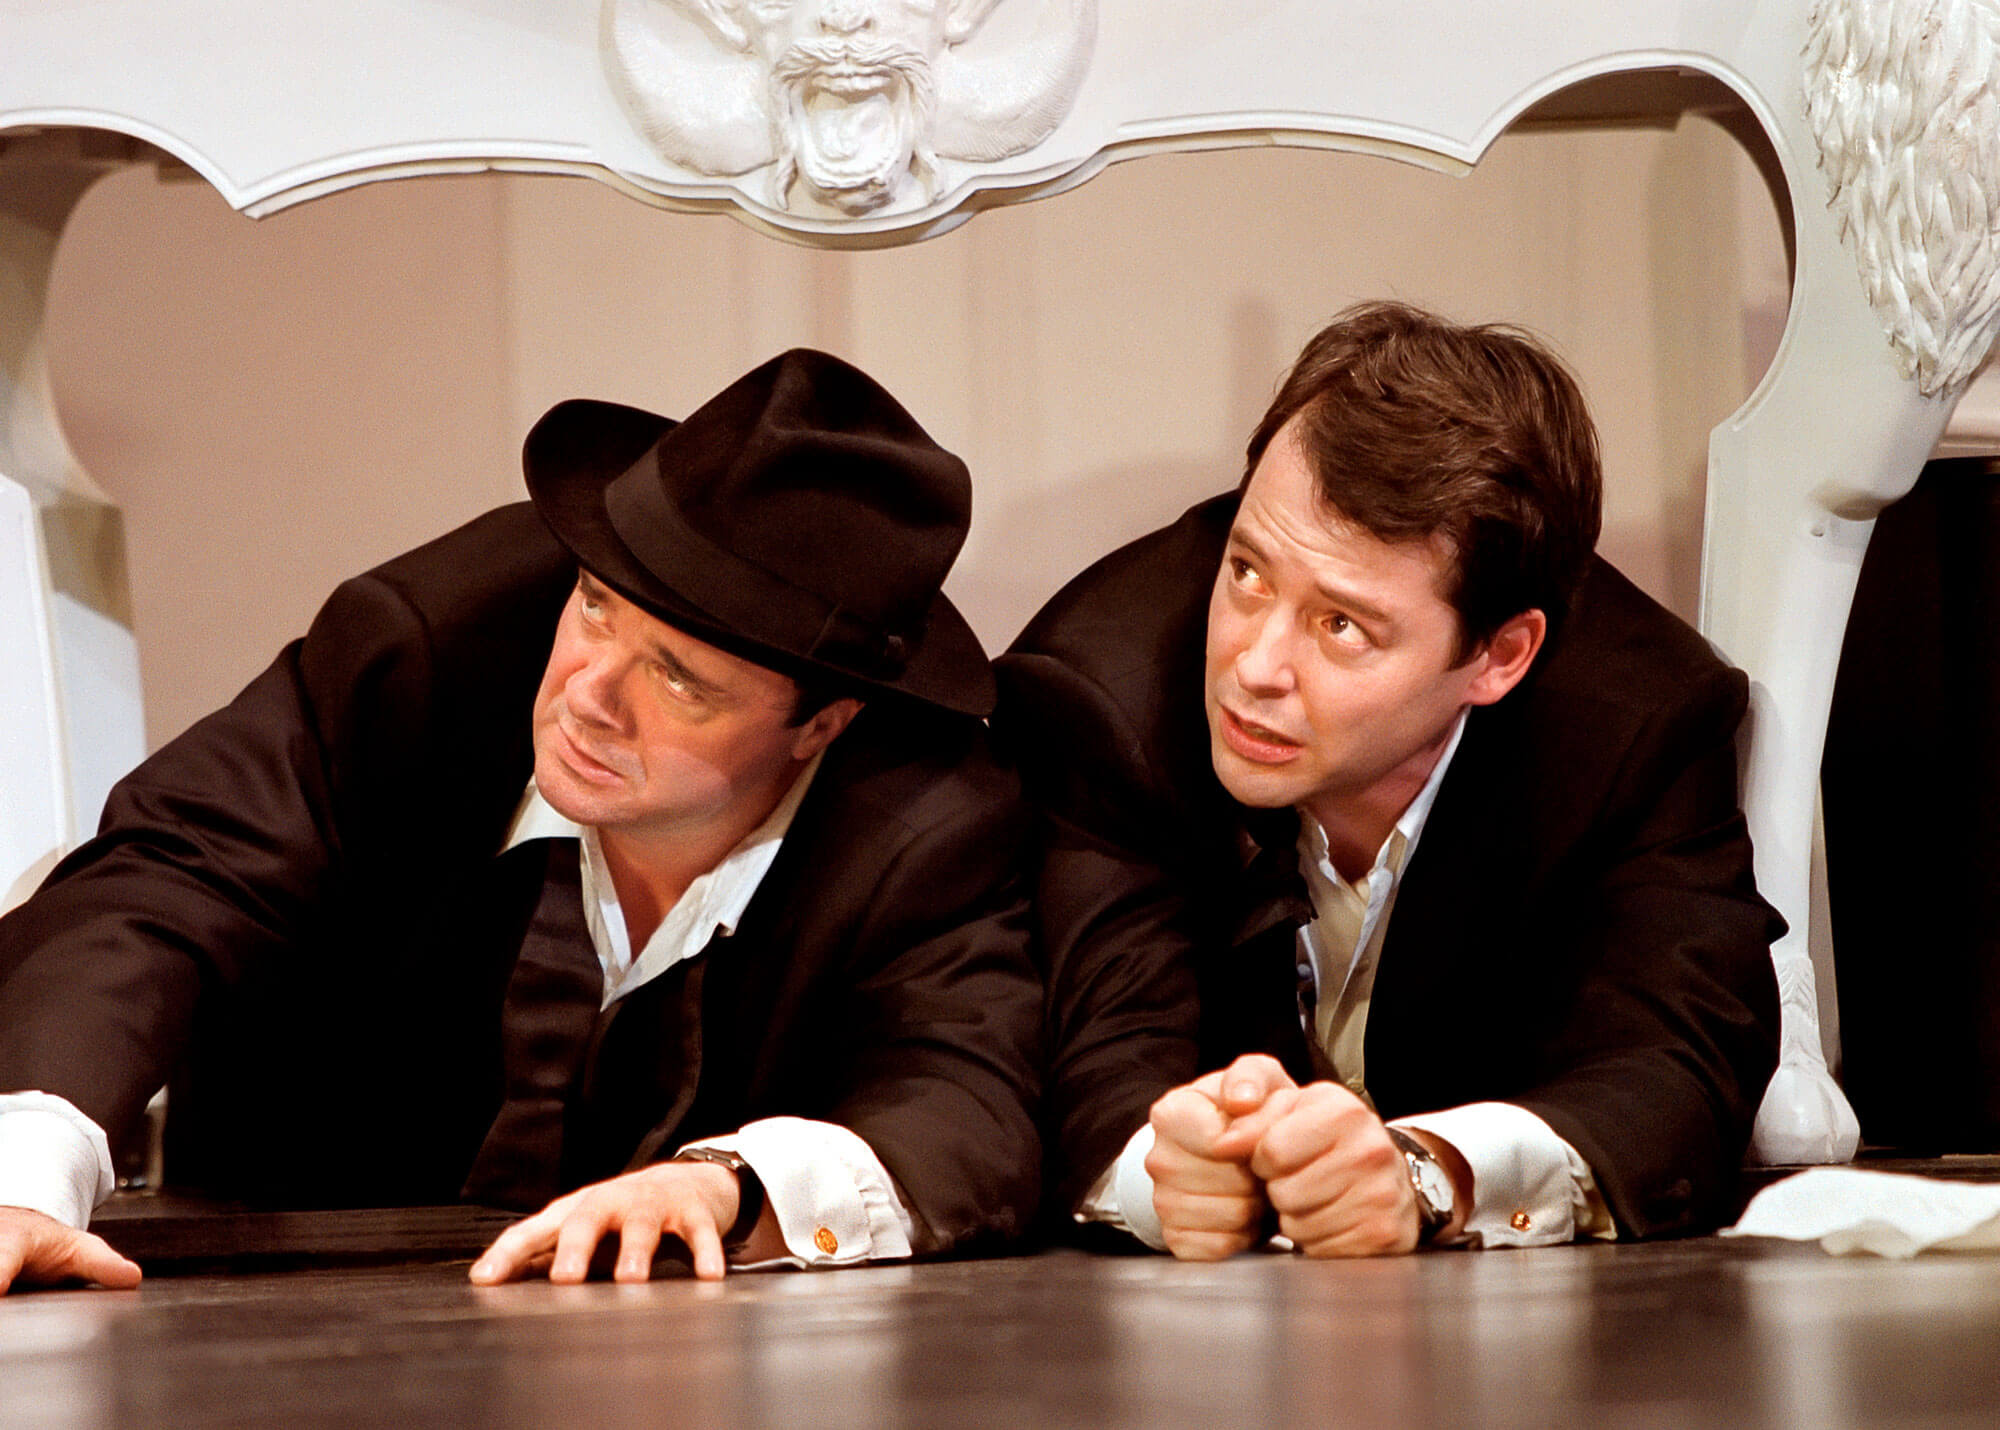 Nathan Lane and Matthew Broderick hiding under a white table. They look worried.